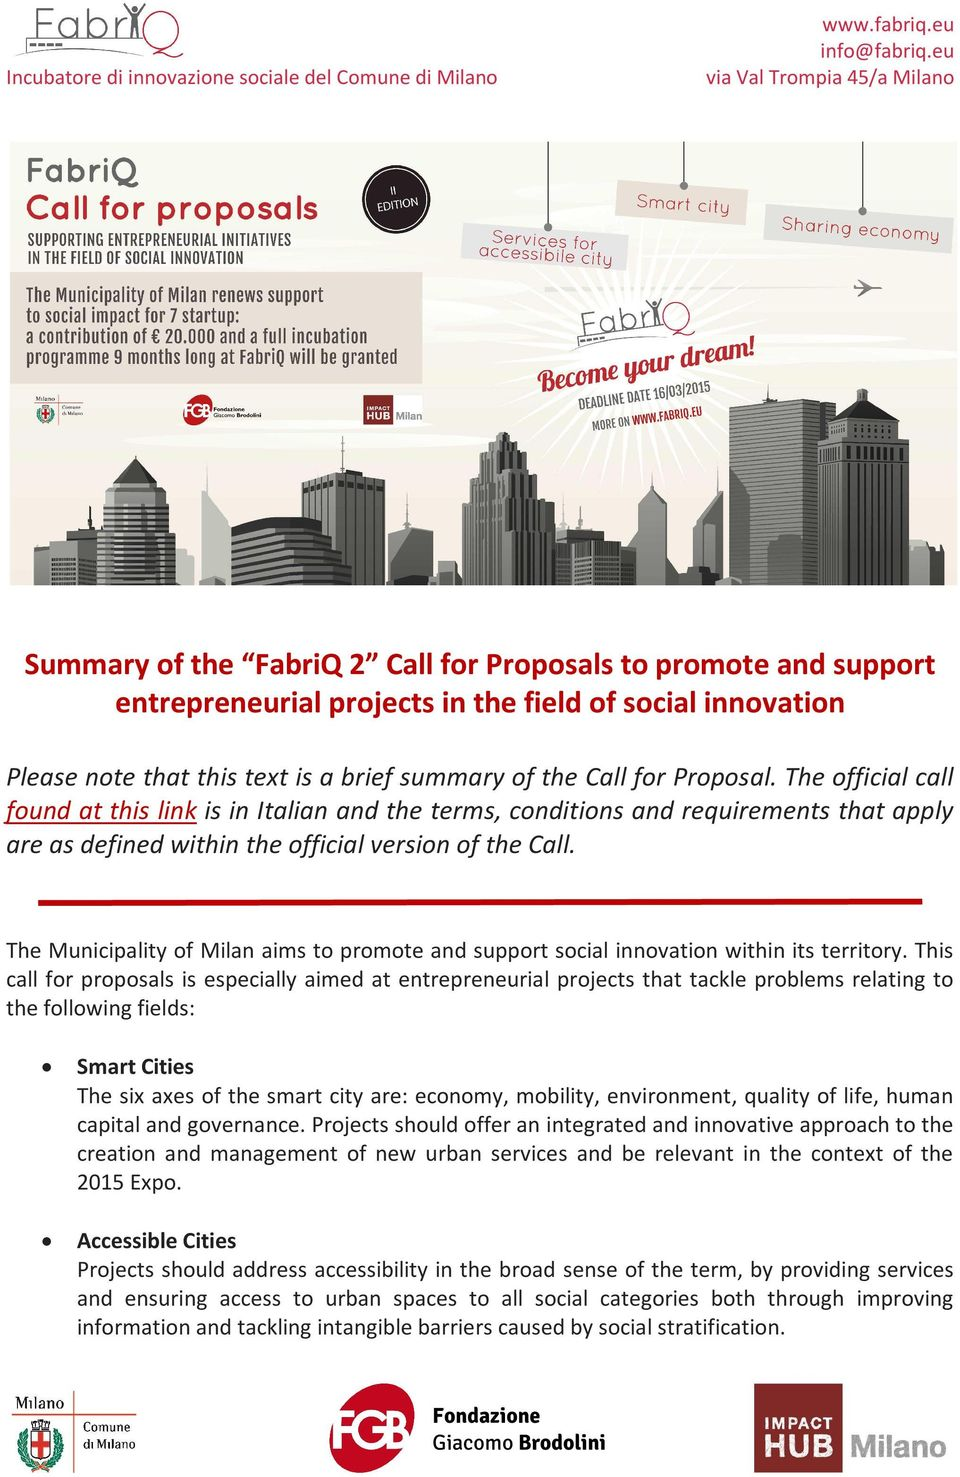 The Municipality of Milan aims to promote and support social innovation within its territory.